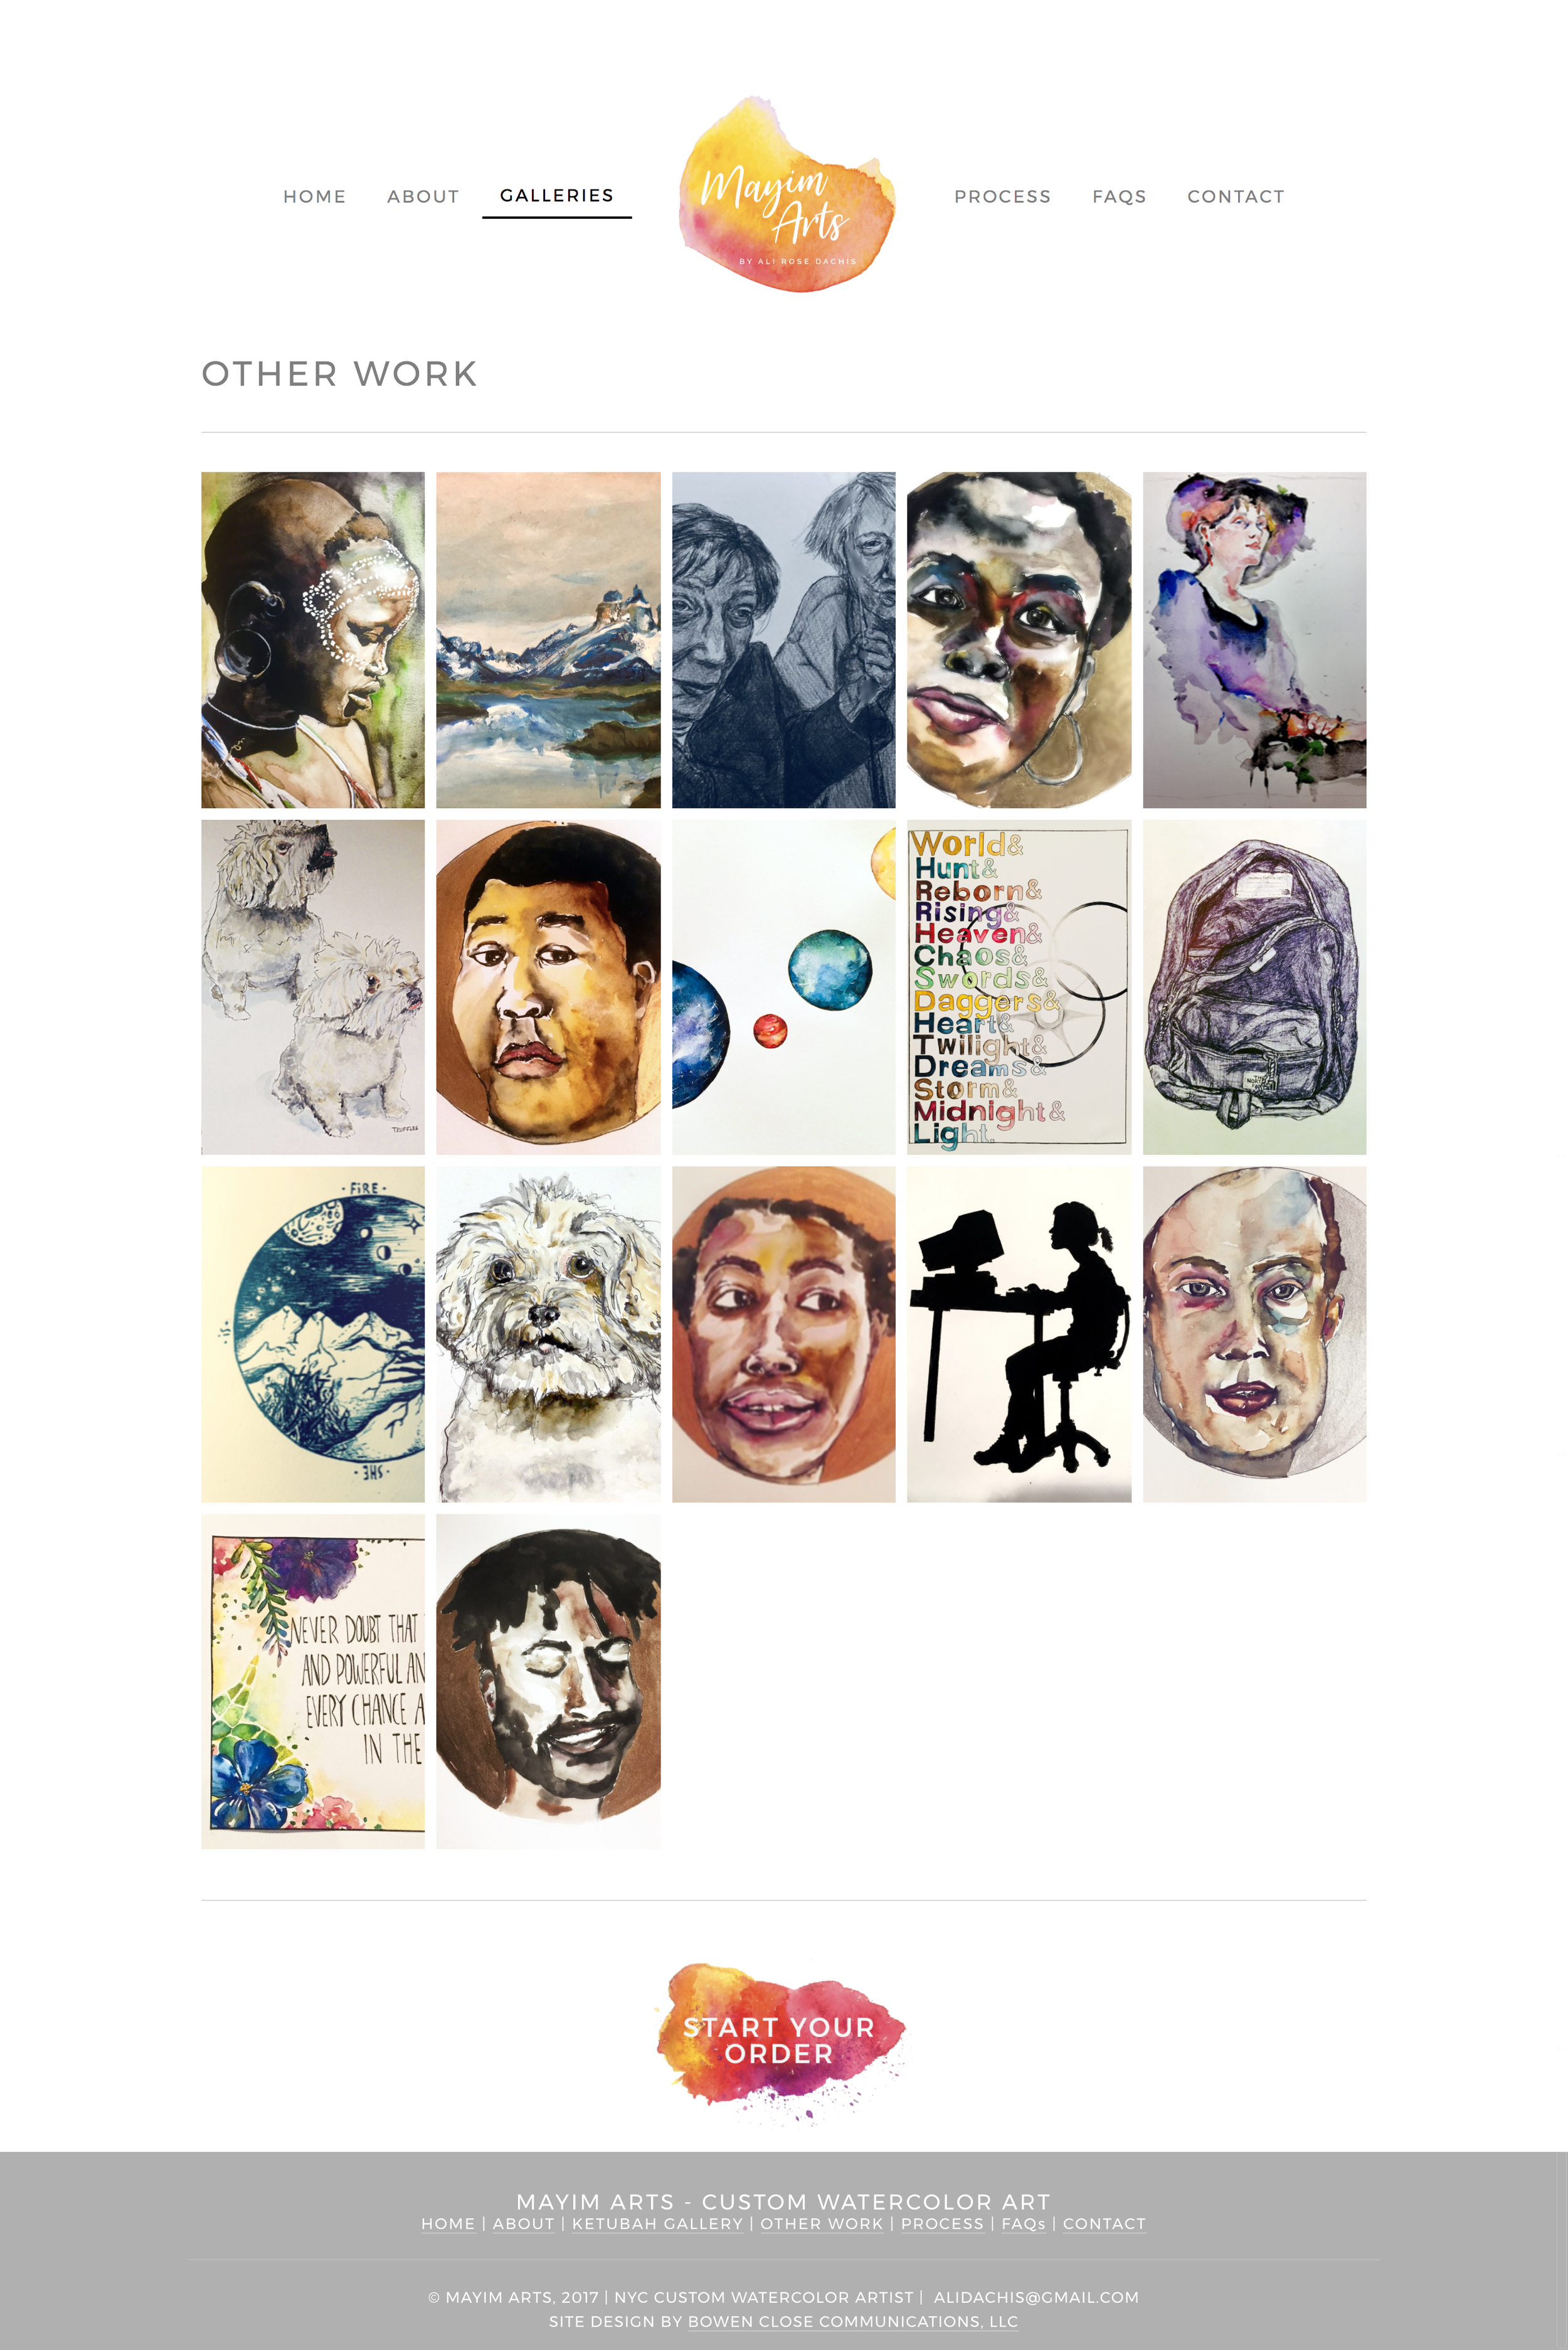 Mayim - Other work gallery.png